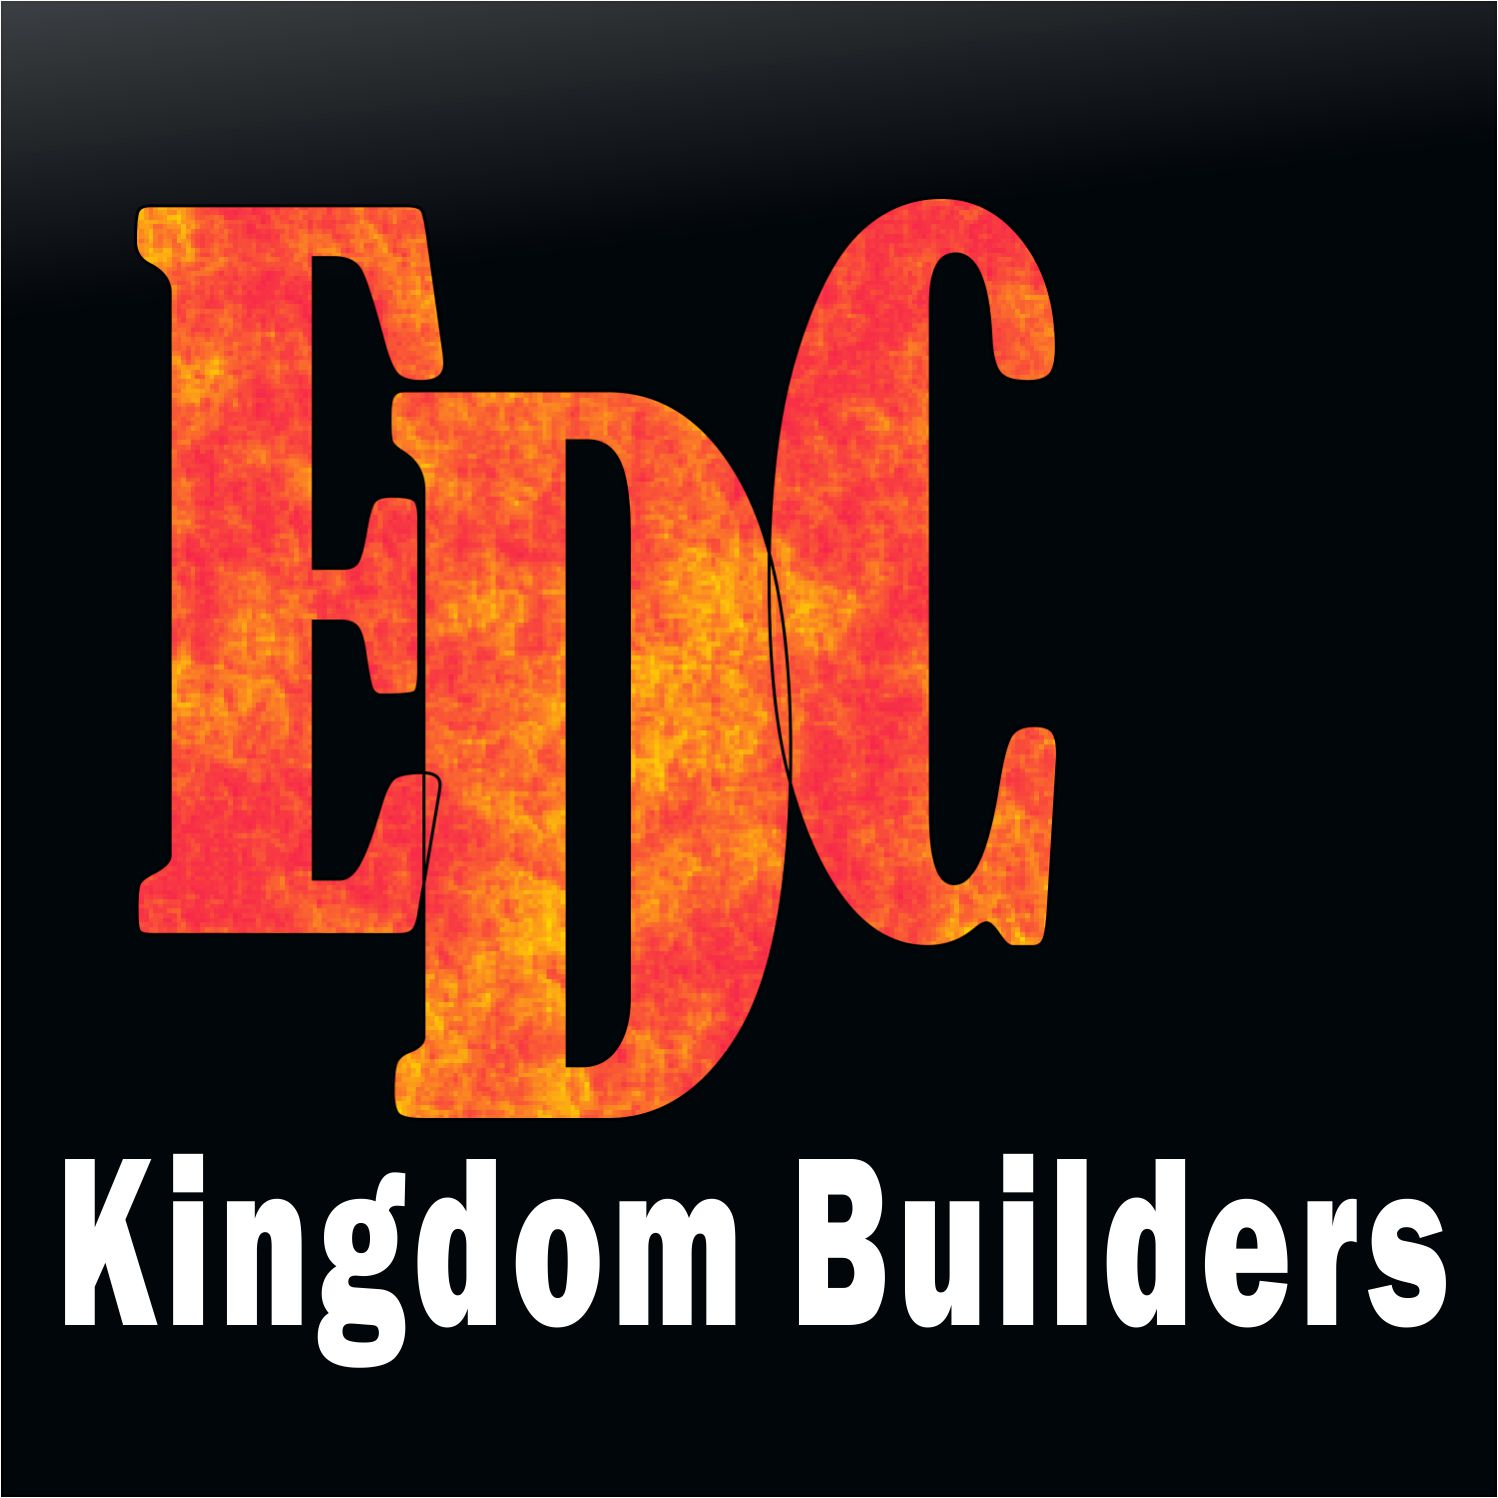 EDC Kingdom Builders